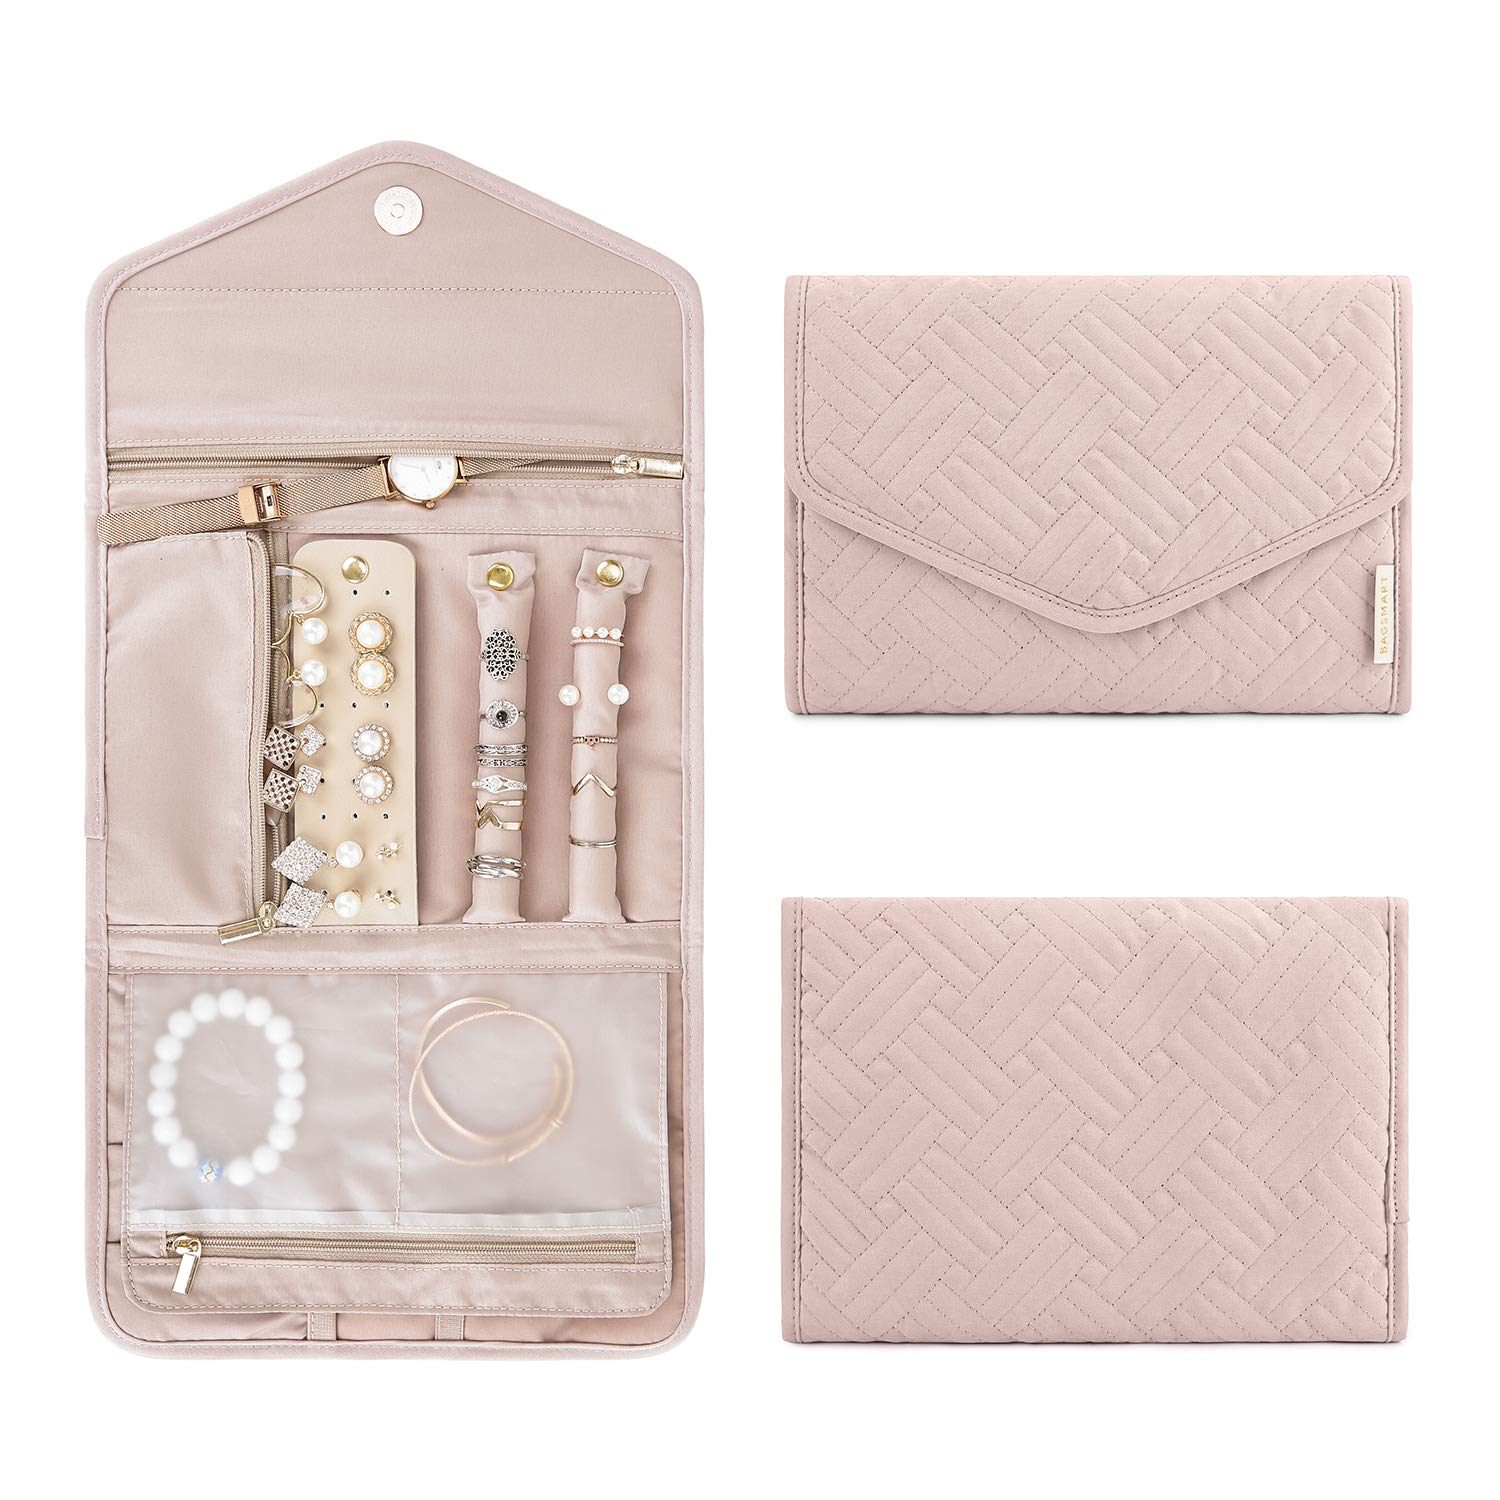 BAGSMART Travel Jewelry Organizer Roll Foldable Jewelry Case for Journey-Rings, Necklaces, Bracelets, Earrings, Soft Pink by BAGSMART